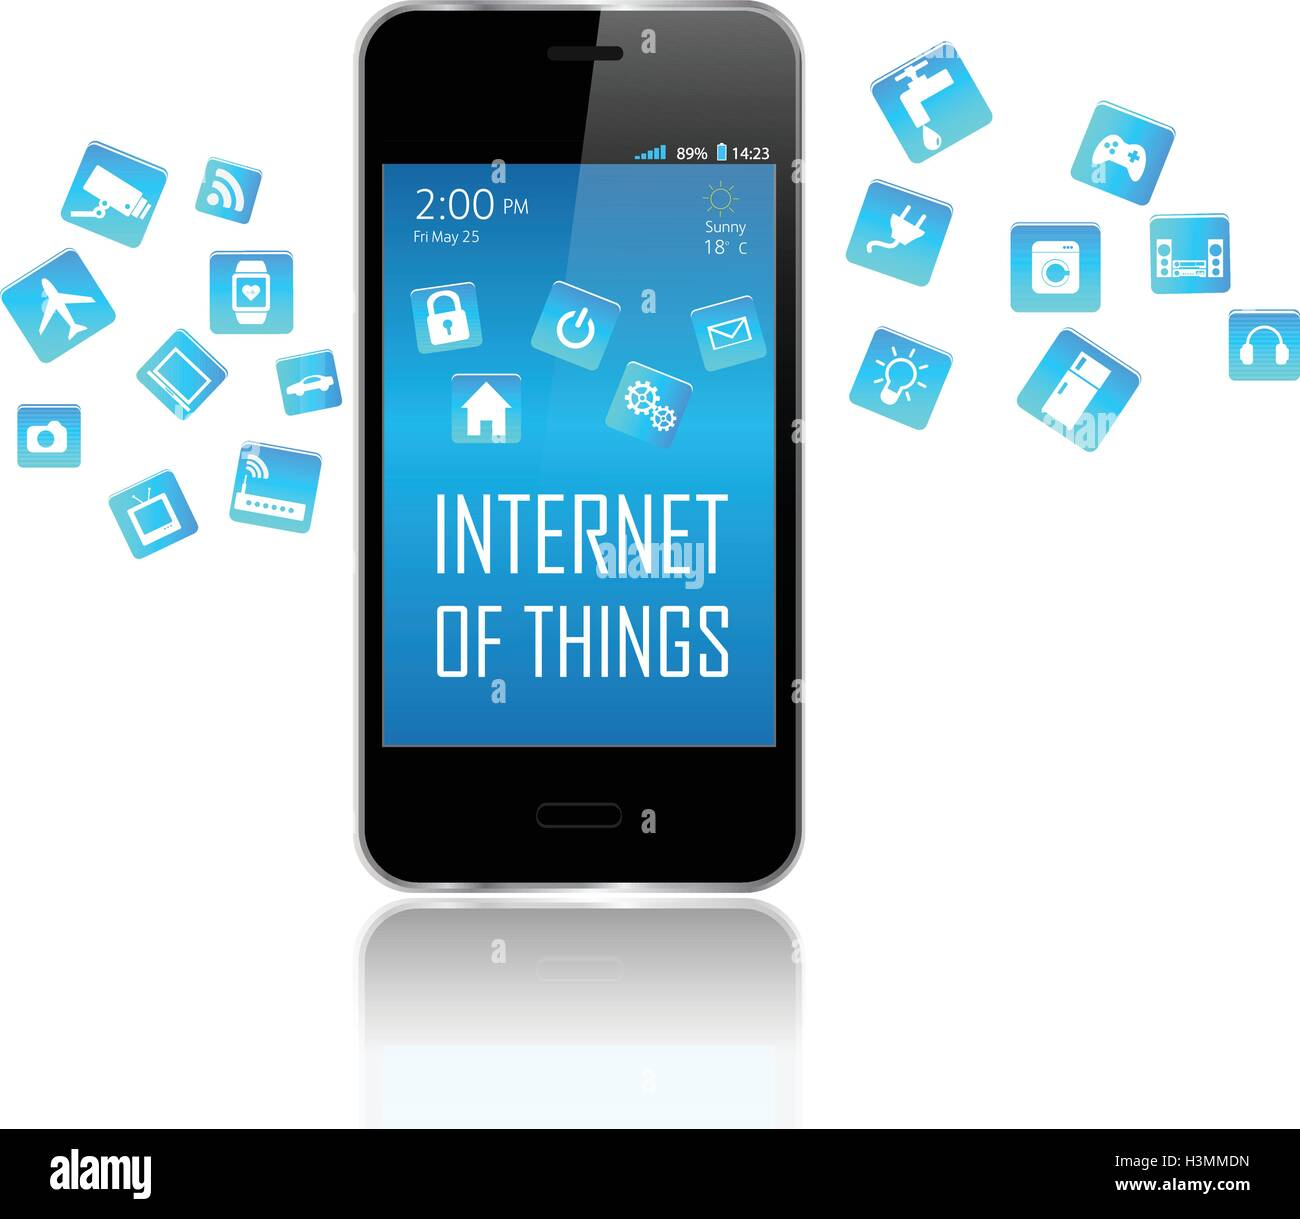 Smart phone with Internet of things (IoT) objects icon connecting together. Internet networking concept. - Stock Image